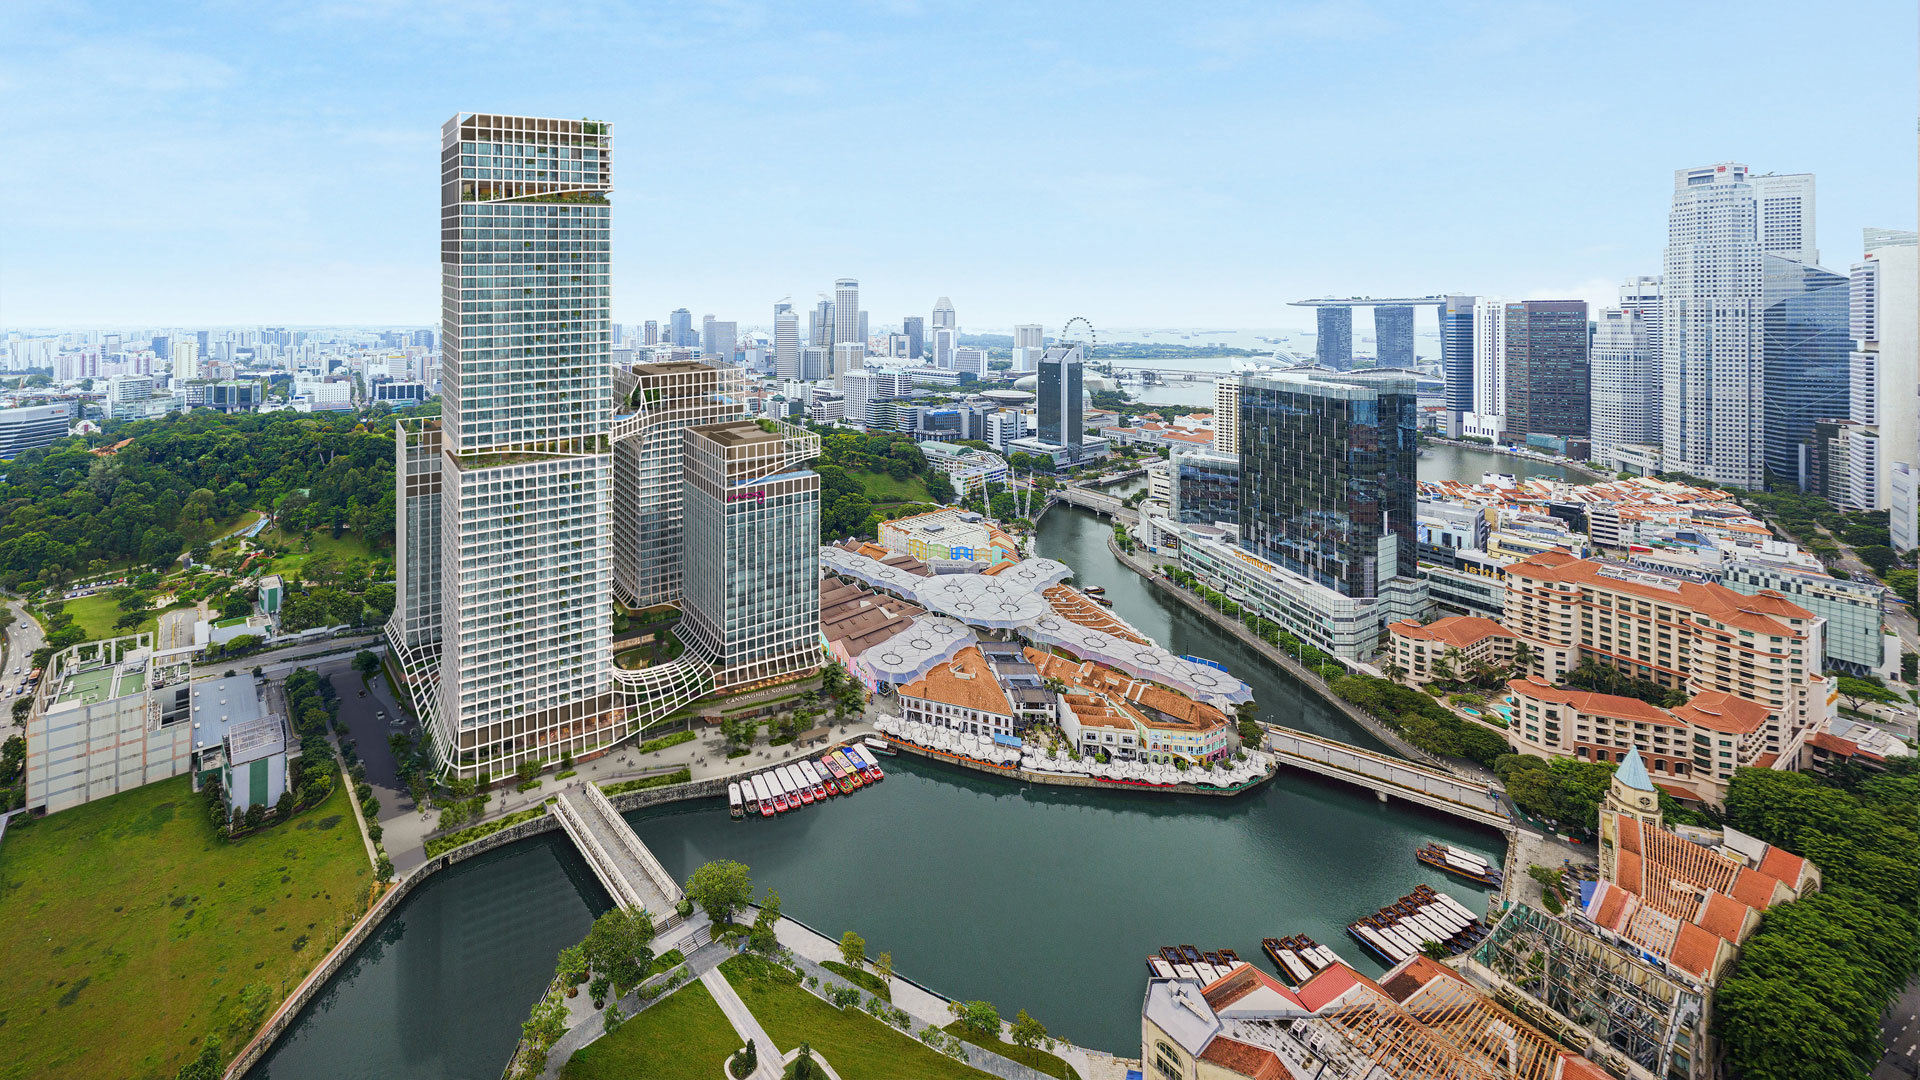 Artist's Impression . Canninghill Piers along Singapore River